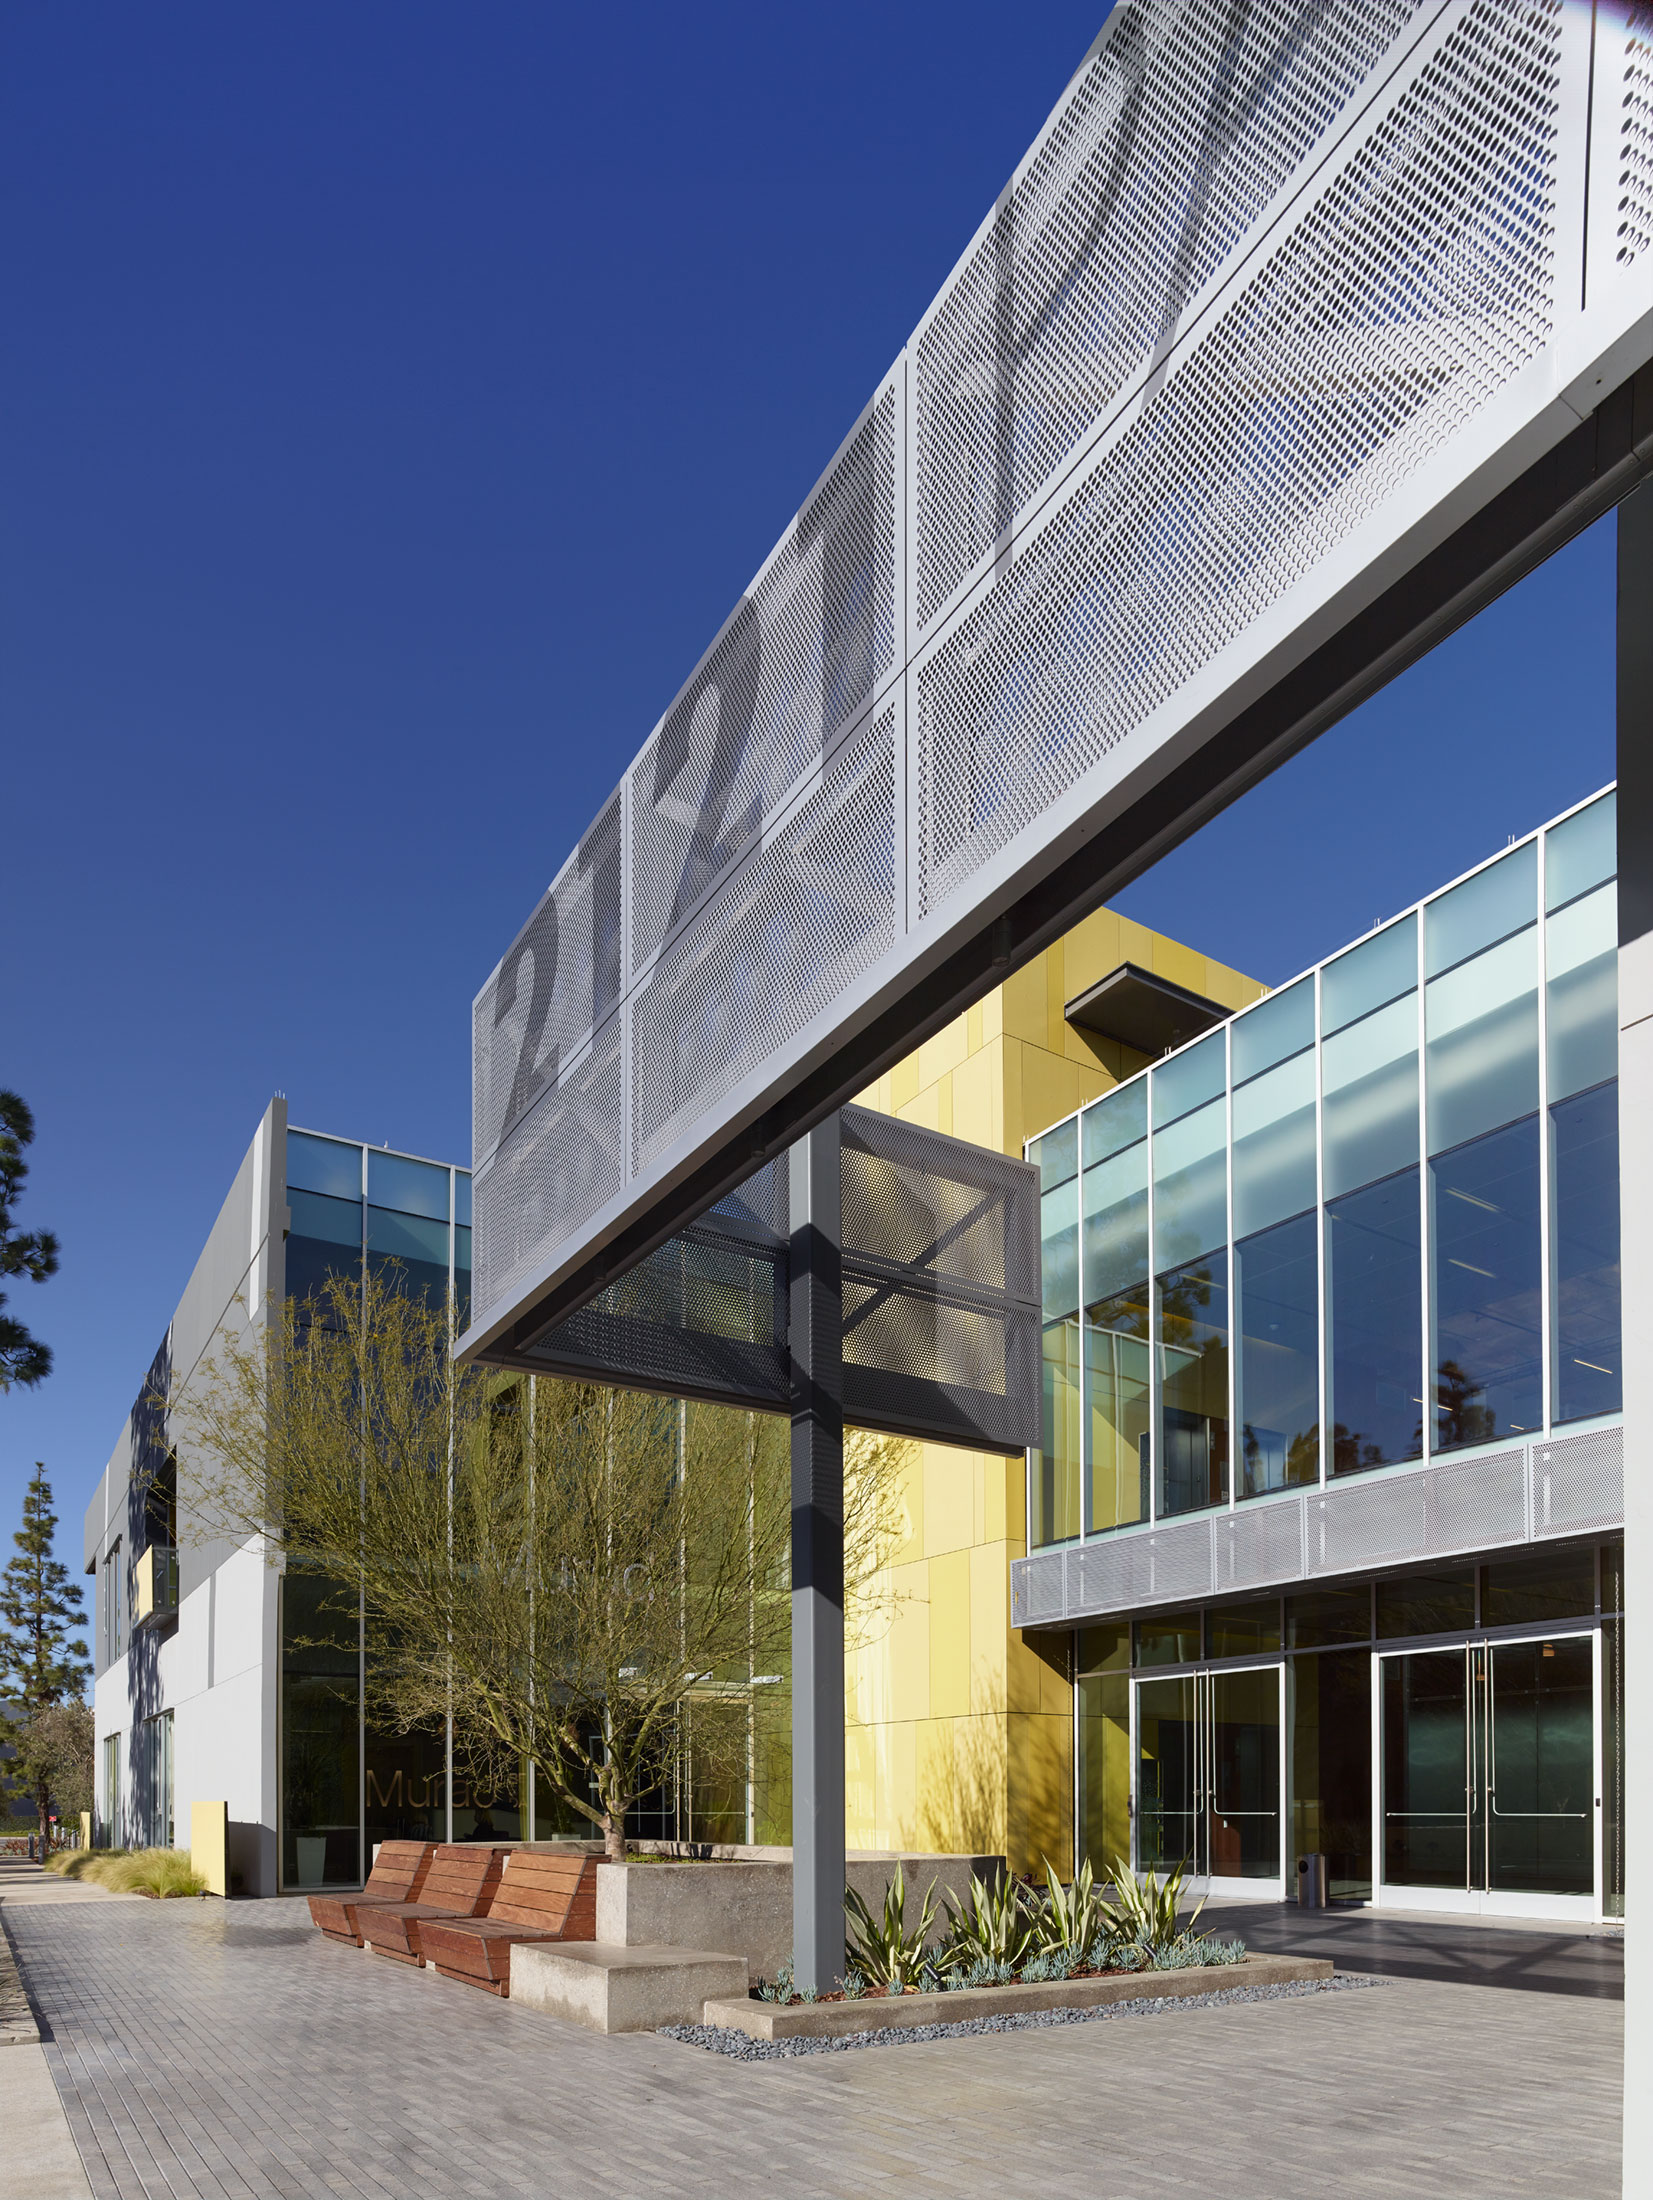 modern-architecture-building-retail-campus-workplace-california-shubindonaldson-2121-park-place-1